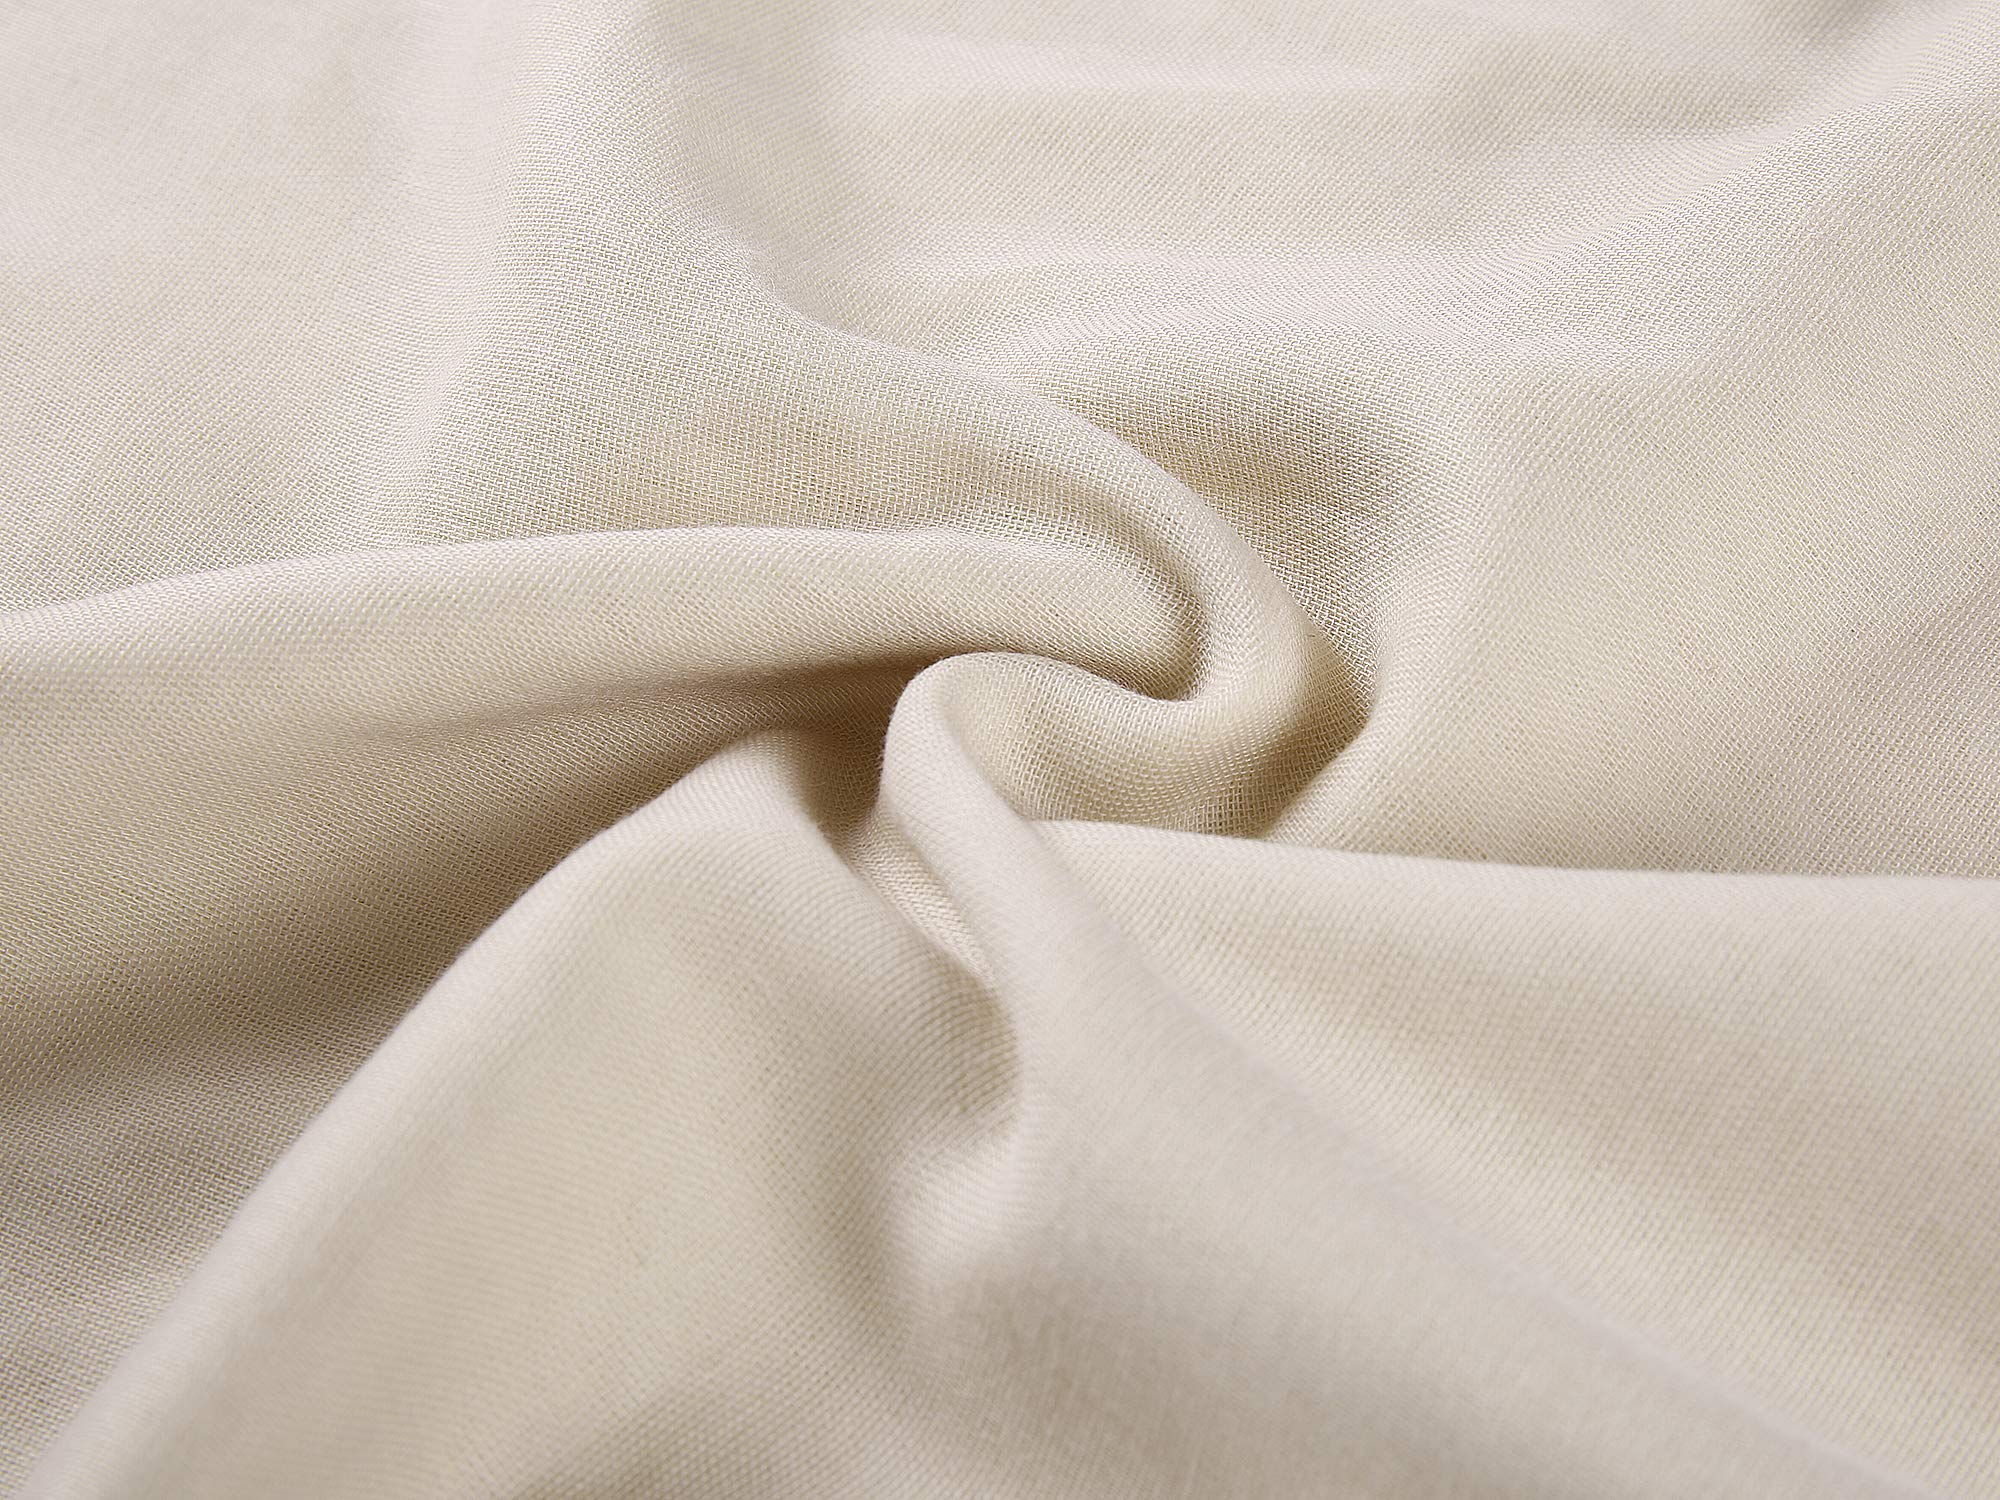 GYS Ultra Soft and Lightweight 100% Organic Cotton Hospital/Home Blanket (Twin Size, 30 Ounce, 58.3''x82.7''), Summer Quilt with 5 Layers of Organic Cotton, Flaxen by GYS (Image #5)